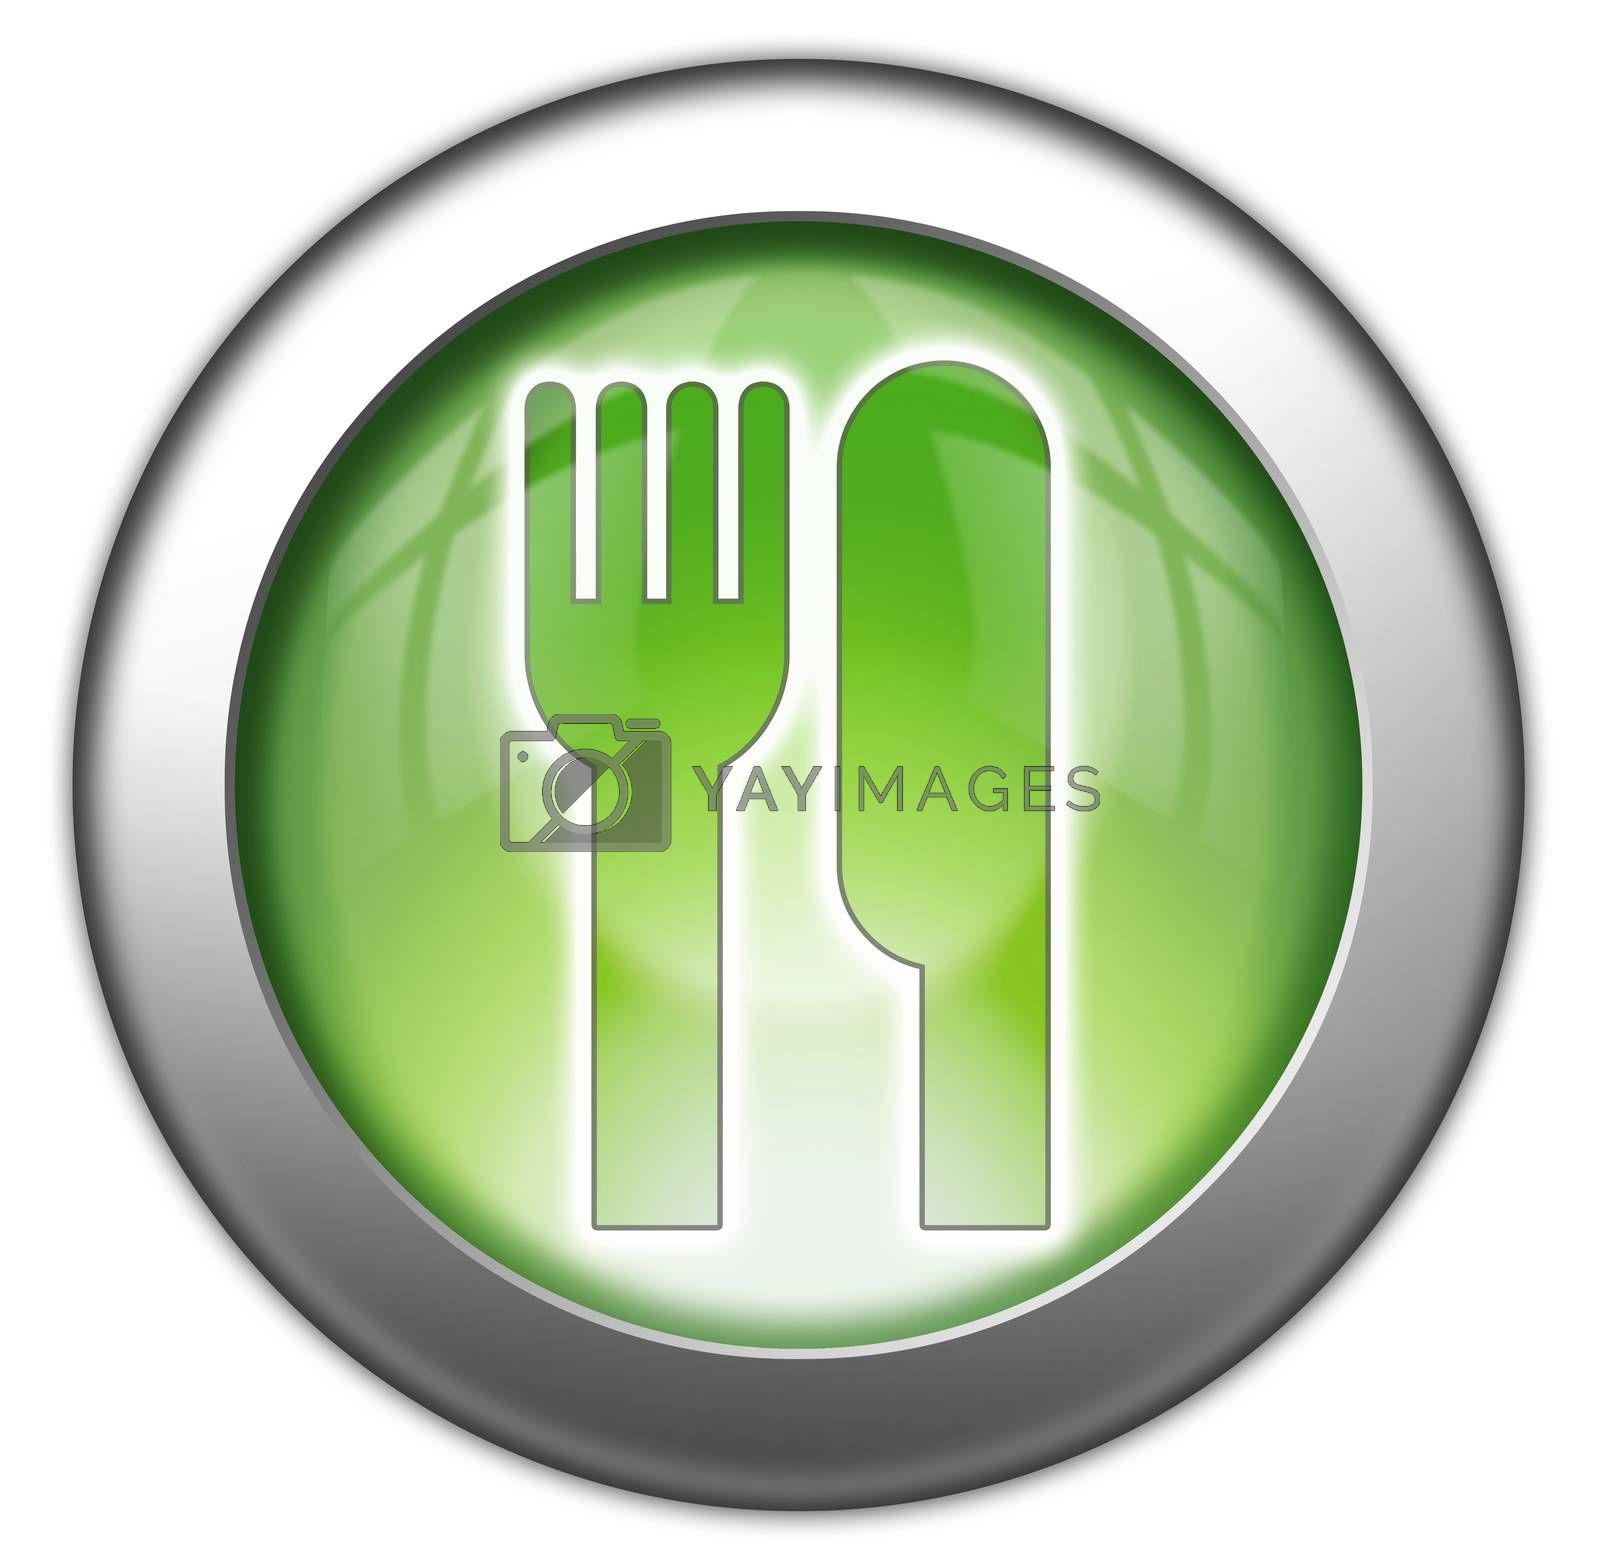 Royalty free image of Icon, Button, Pictogram -Eatery, Restaurant- by mindscanner